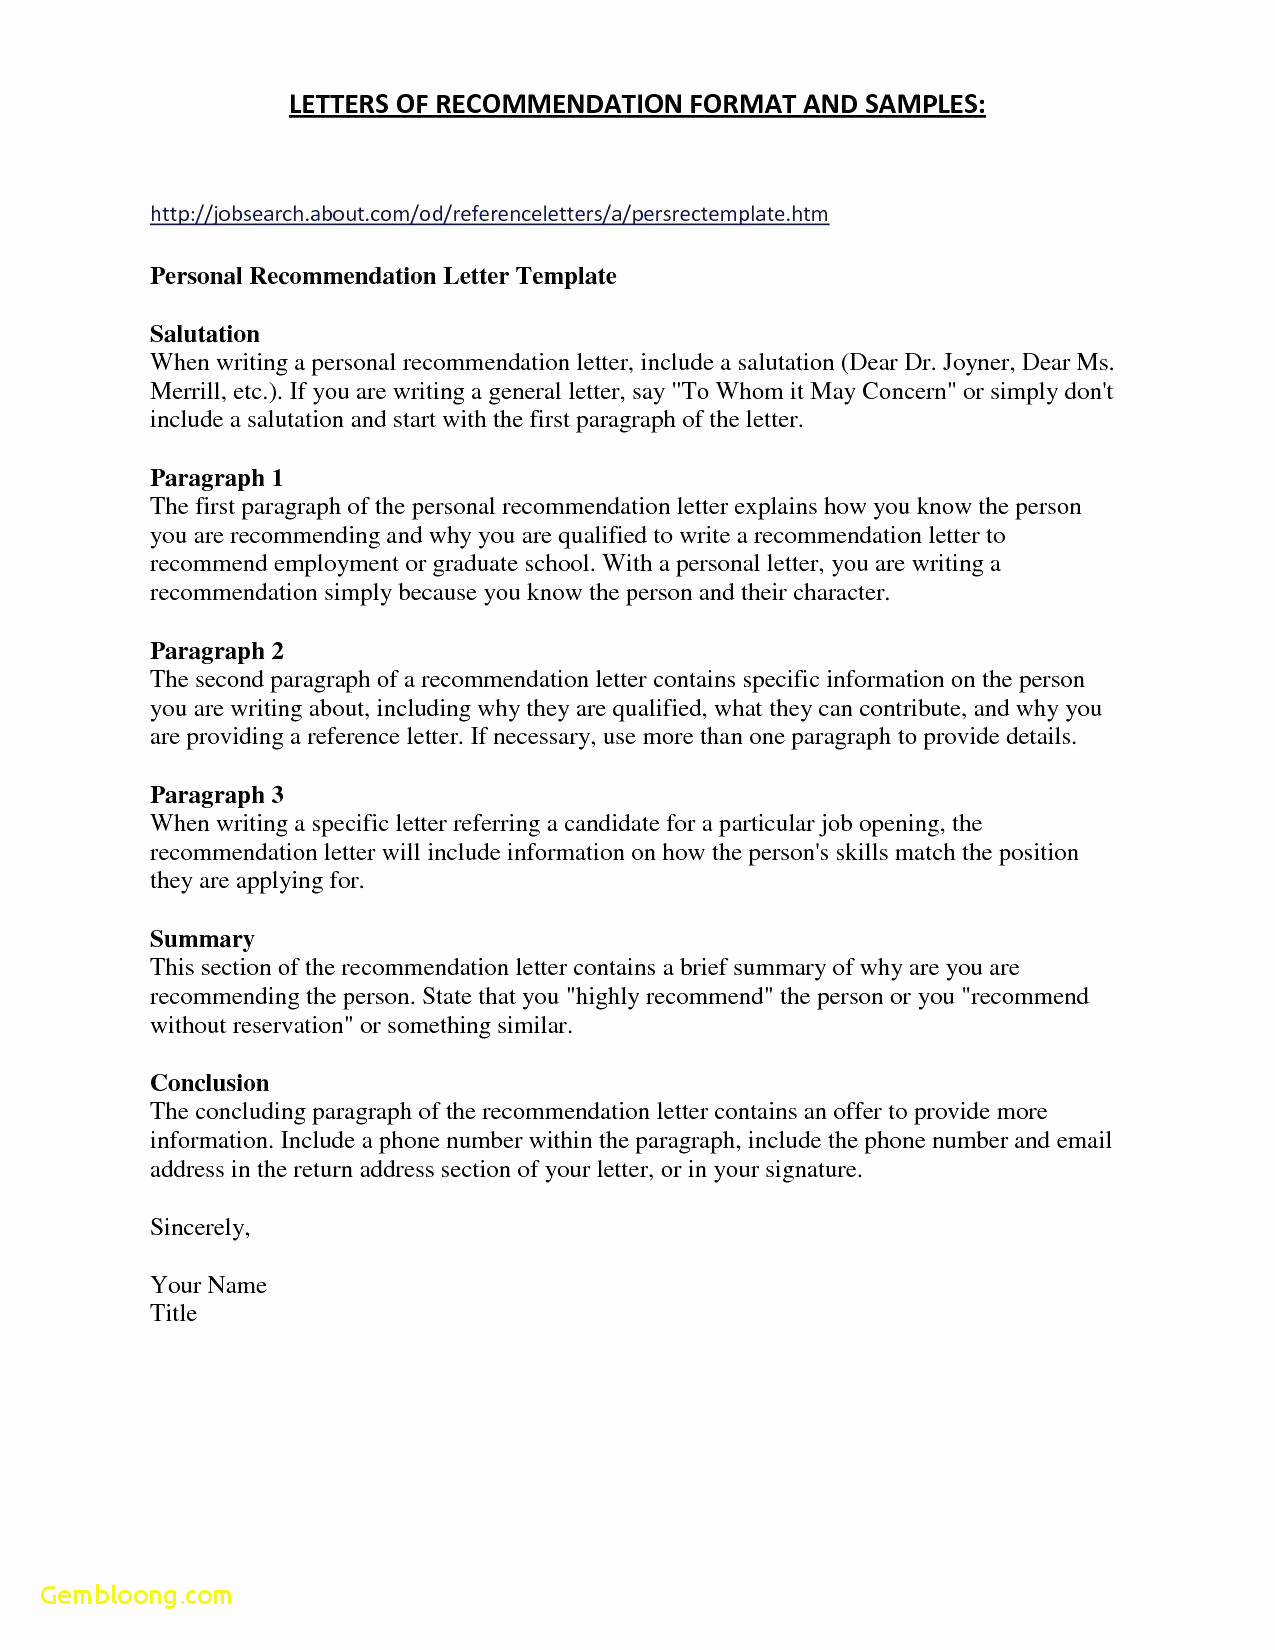 Reference Letter Template Pdf - Personal Re Mendation Letter for Employment Lovely References for